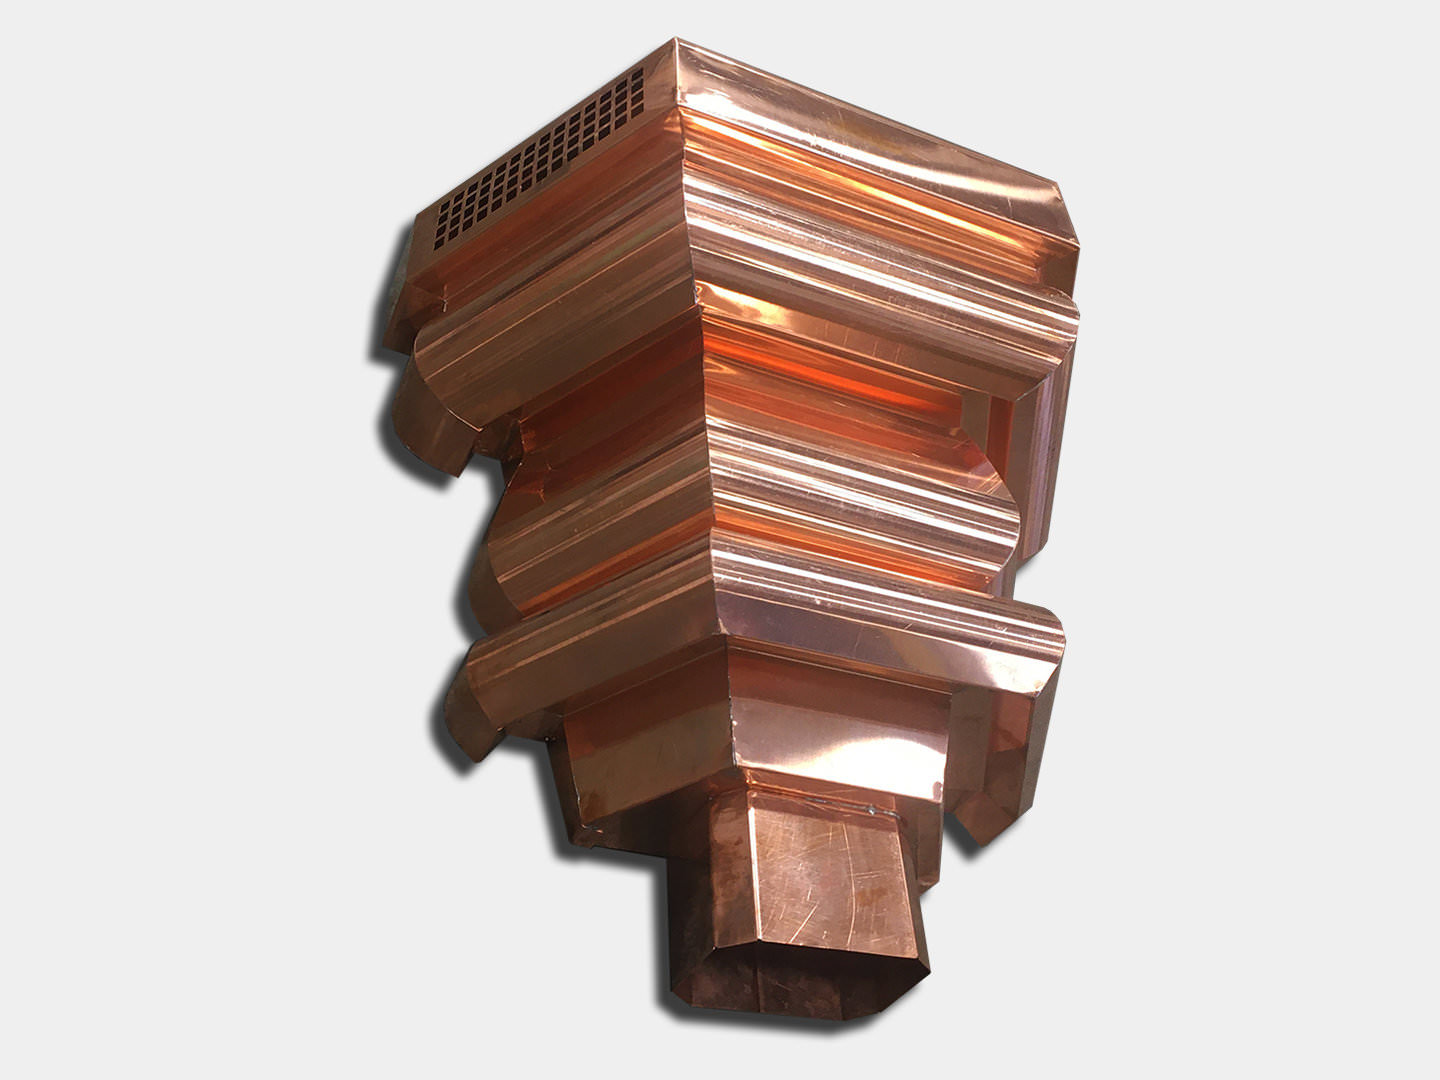 Premium: The Brentwood Copper Conductor Head / Leader Head